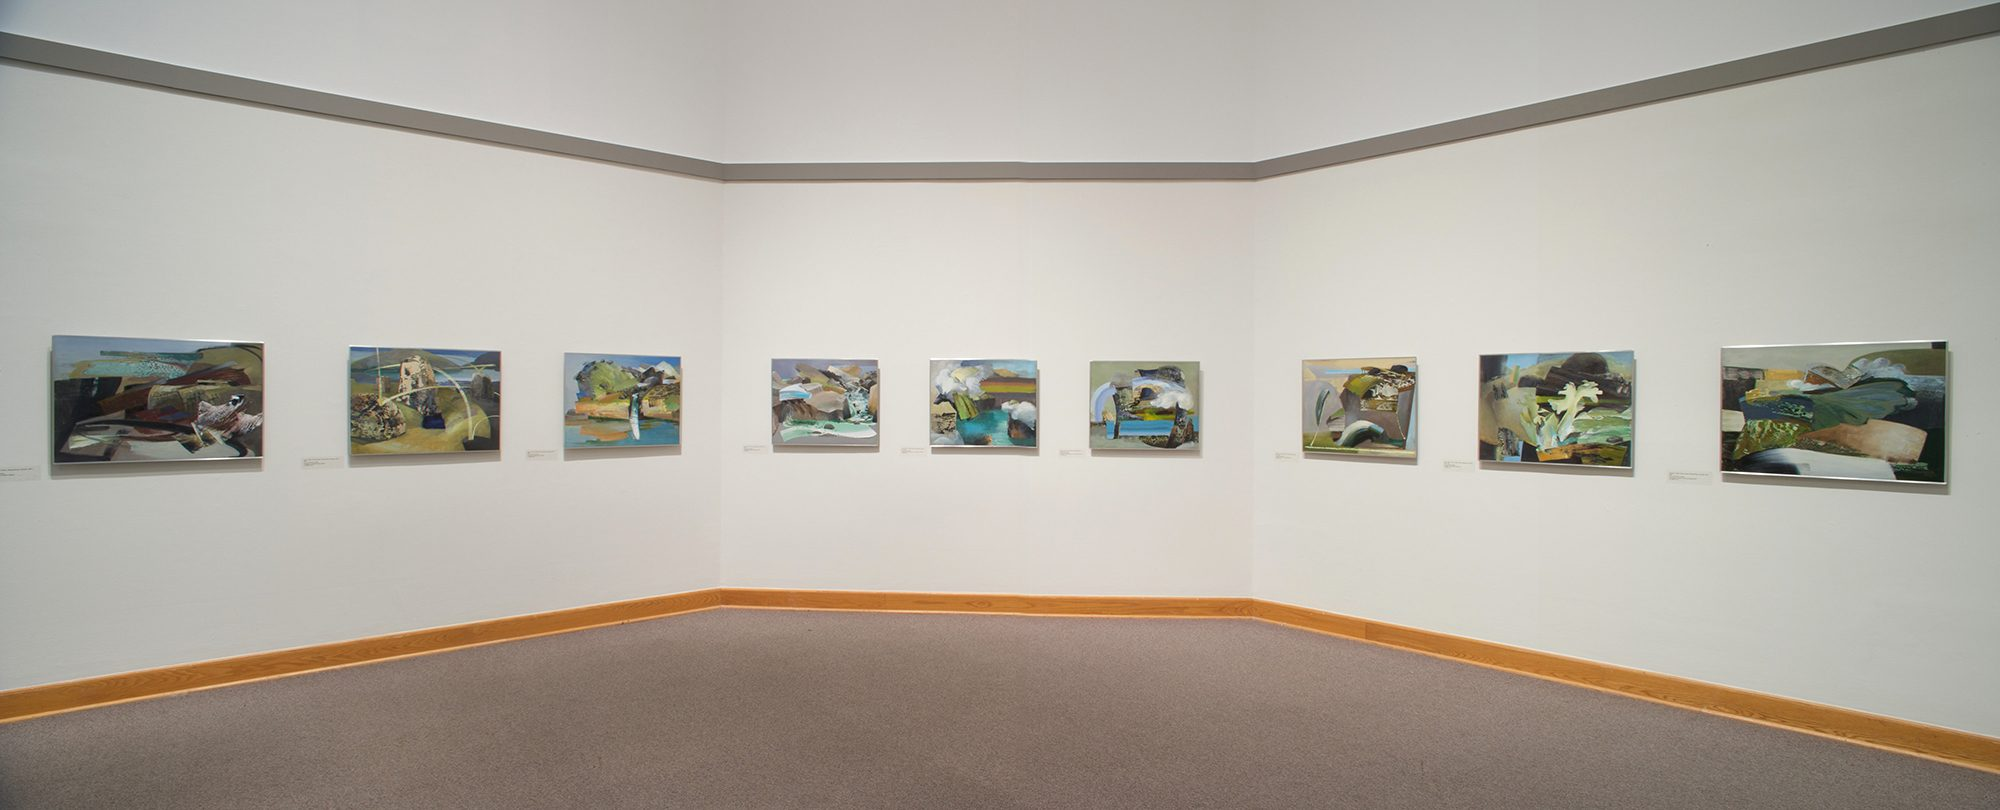 Mike Glier. Installation photo by Arthur Evans.